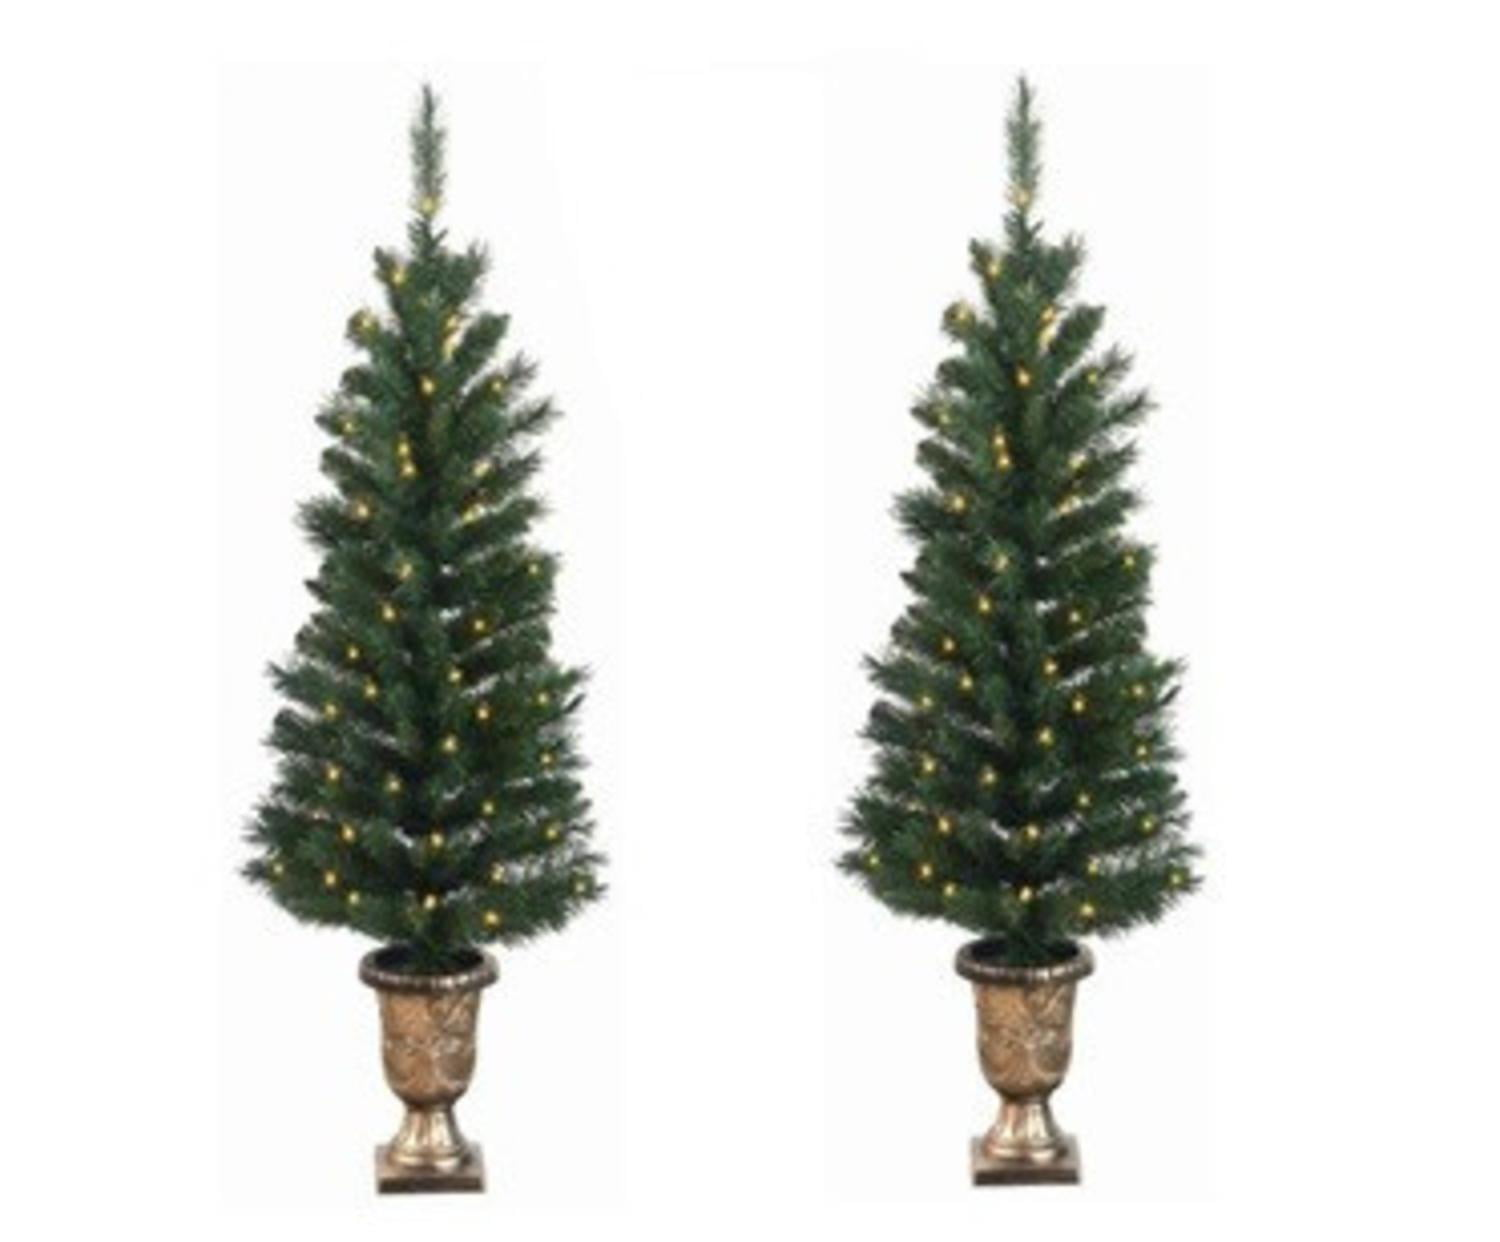 Outdoor Topiary Trees With Lights Pack of 2 pre lit potted porch pine artifical christmas topiary tree pack of 2 pre lit potted porch pine artifical christmas topiary tree clear lights walmart workwithnaturefo